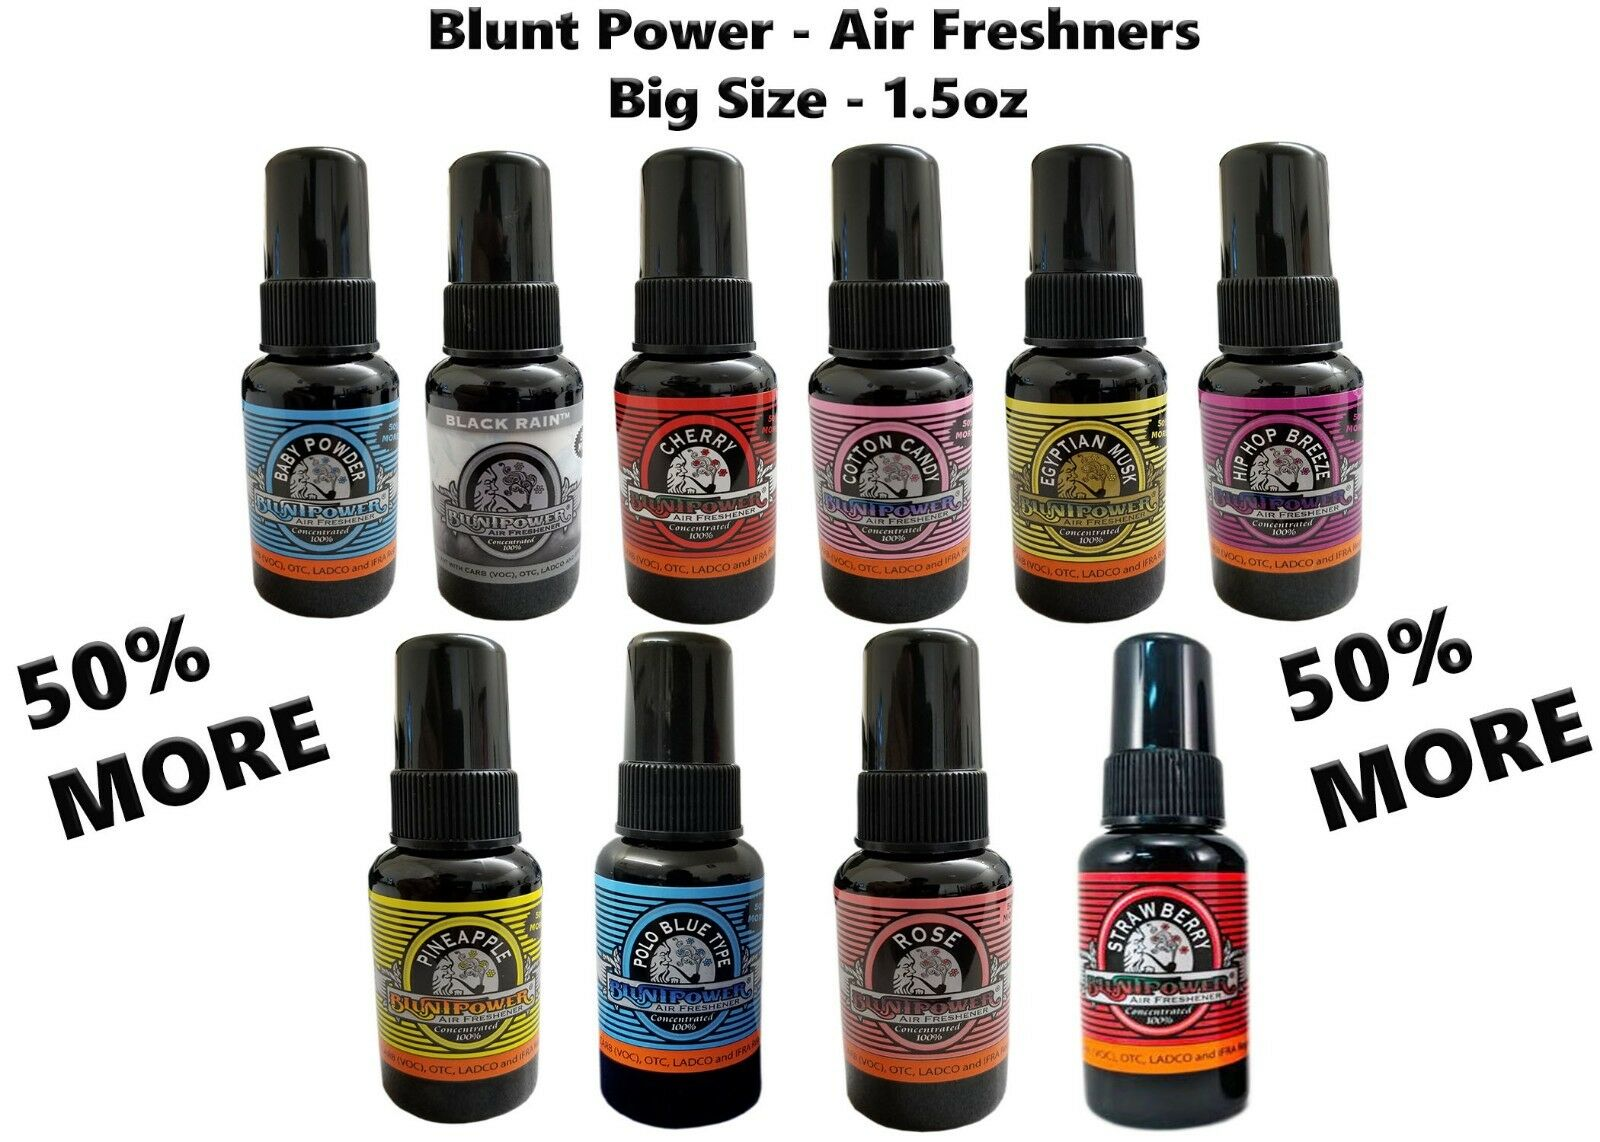 NEW Blunt Power Spray 1.5 oz Air Freshener *2 pack Deal*